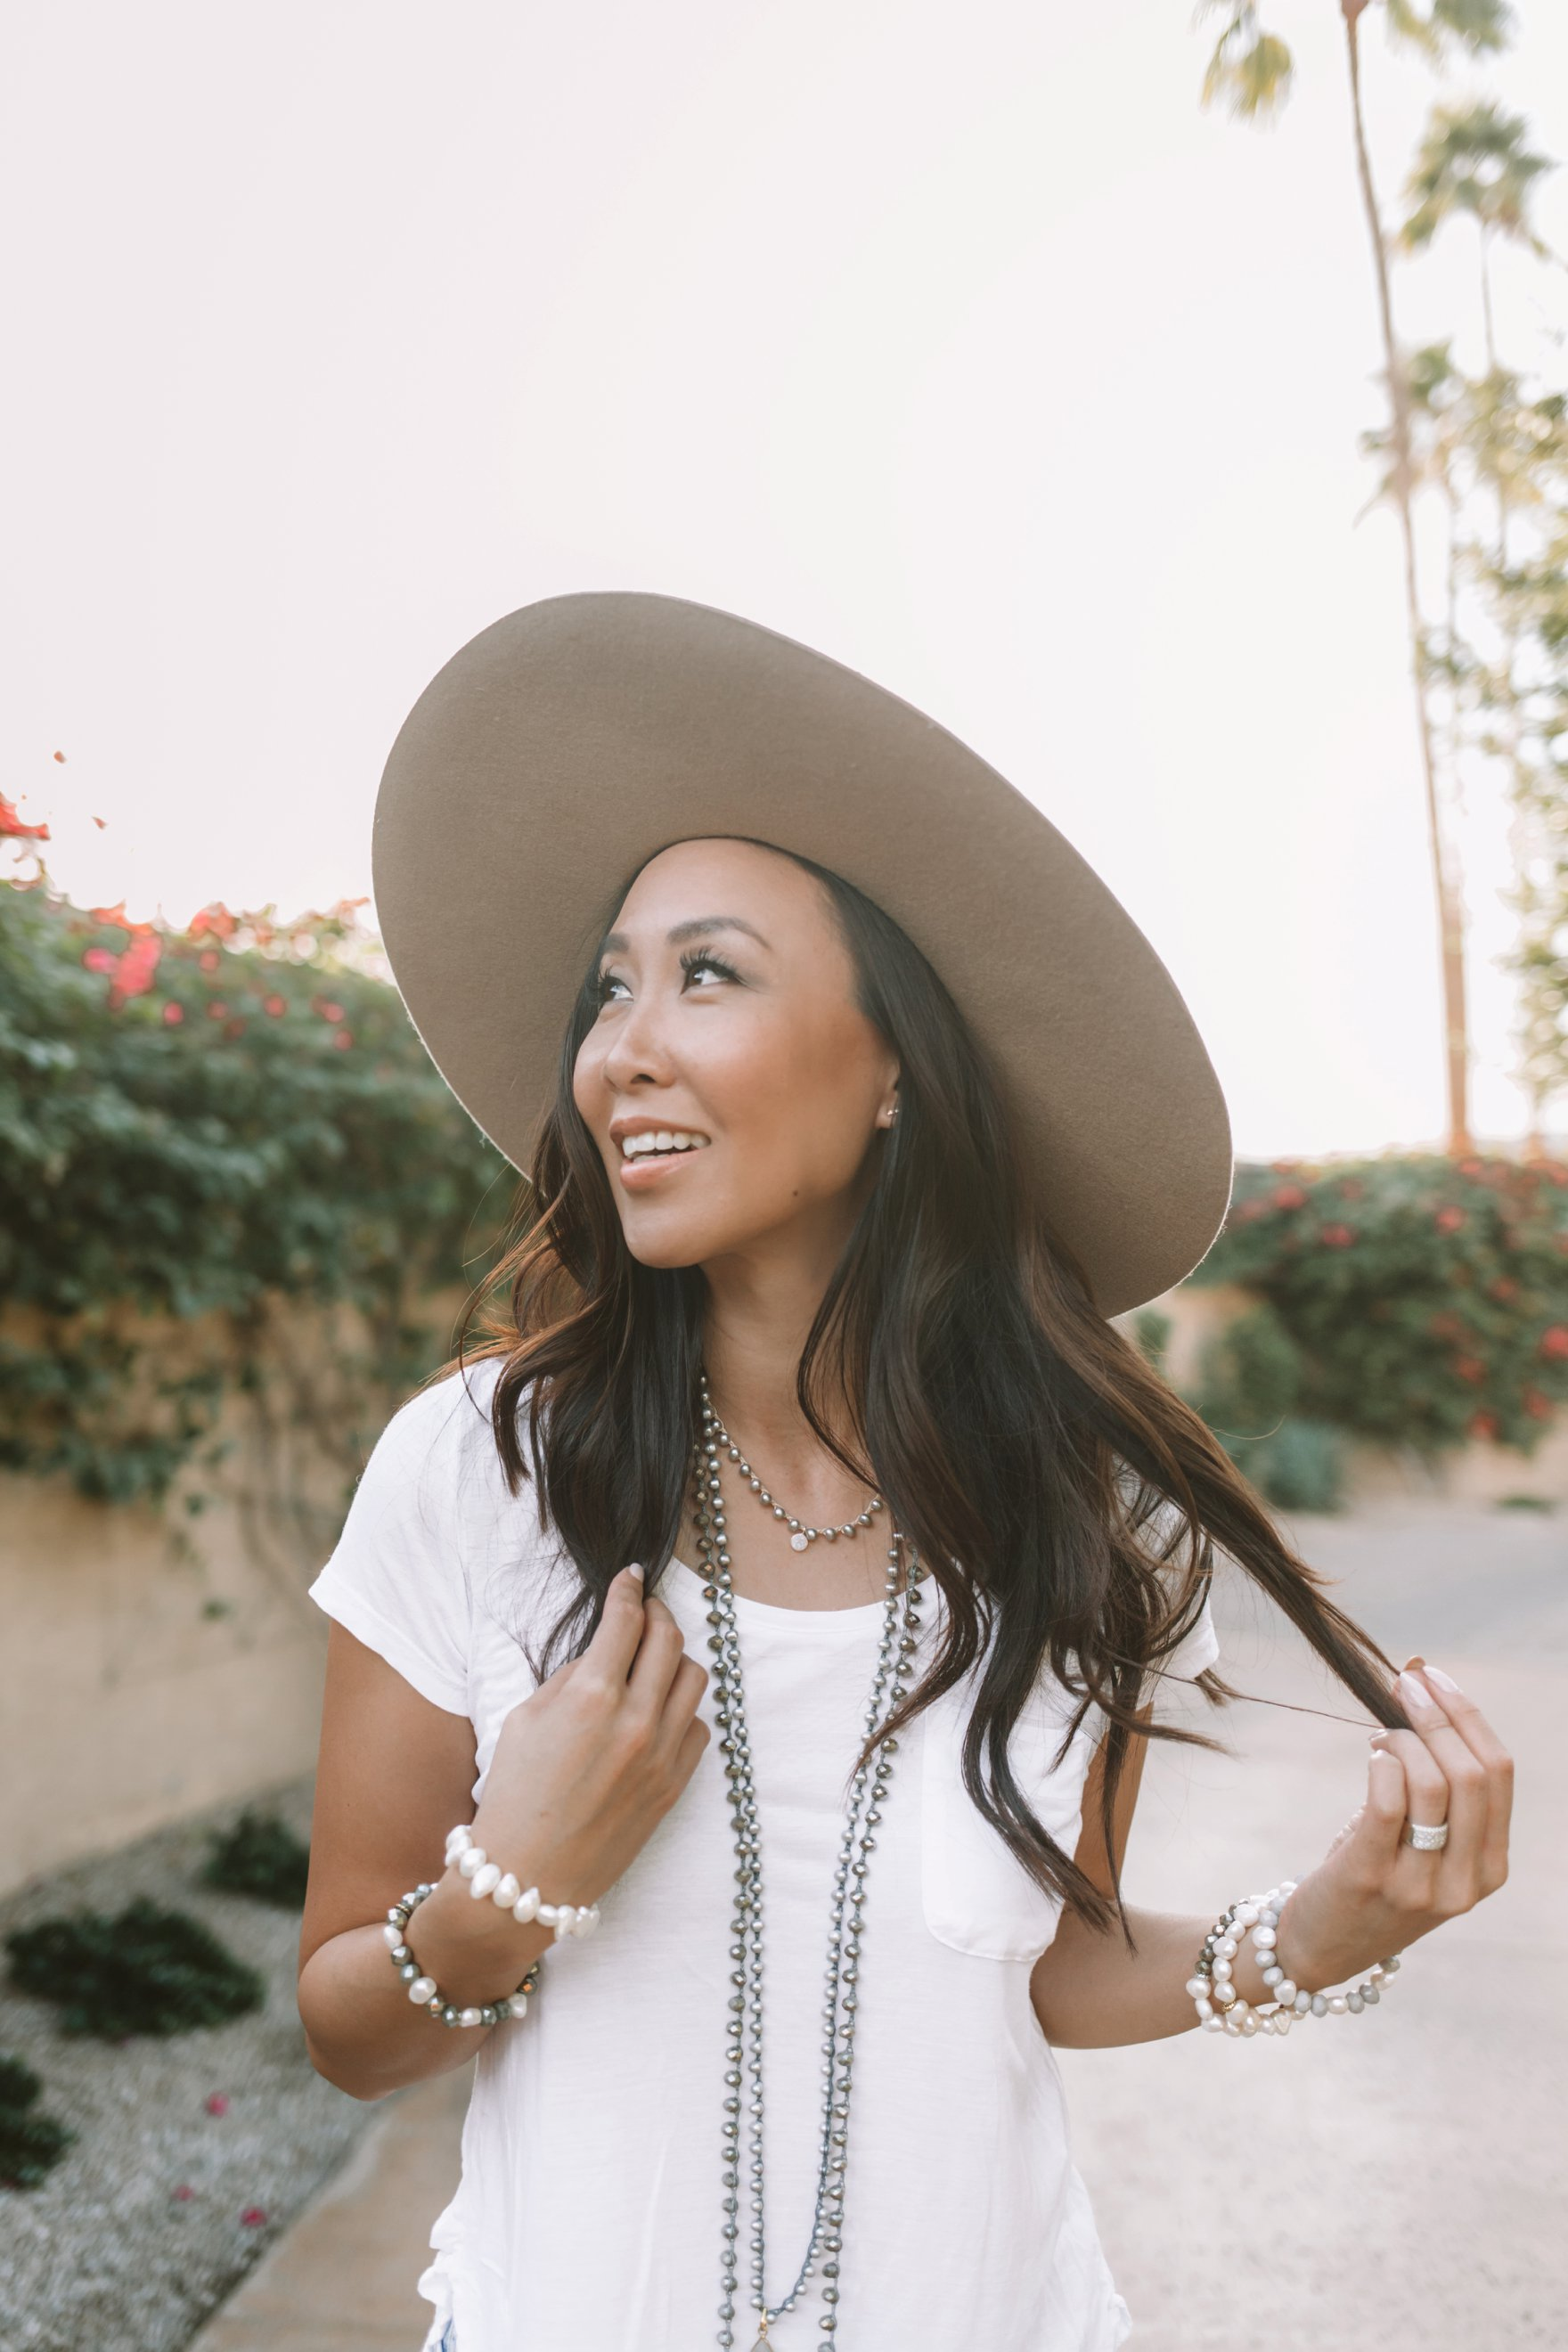 big felt hat with basic tee shirt and pearl necklaces. lifestyle style blogger Diana Elizabeth pulling strands of hair